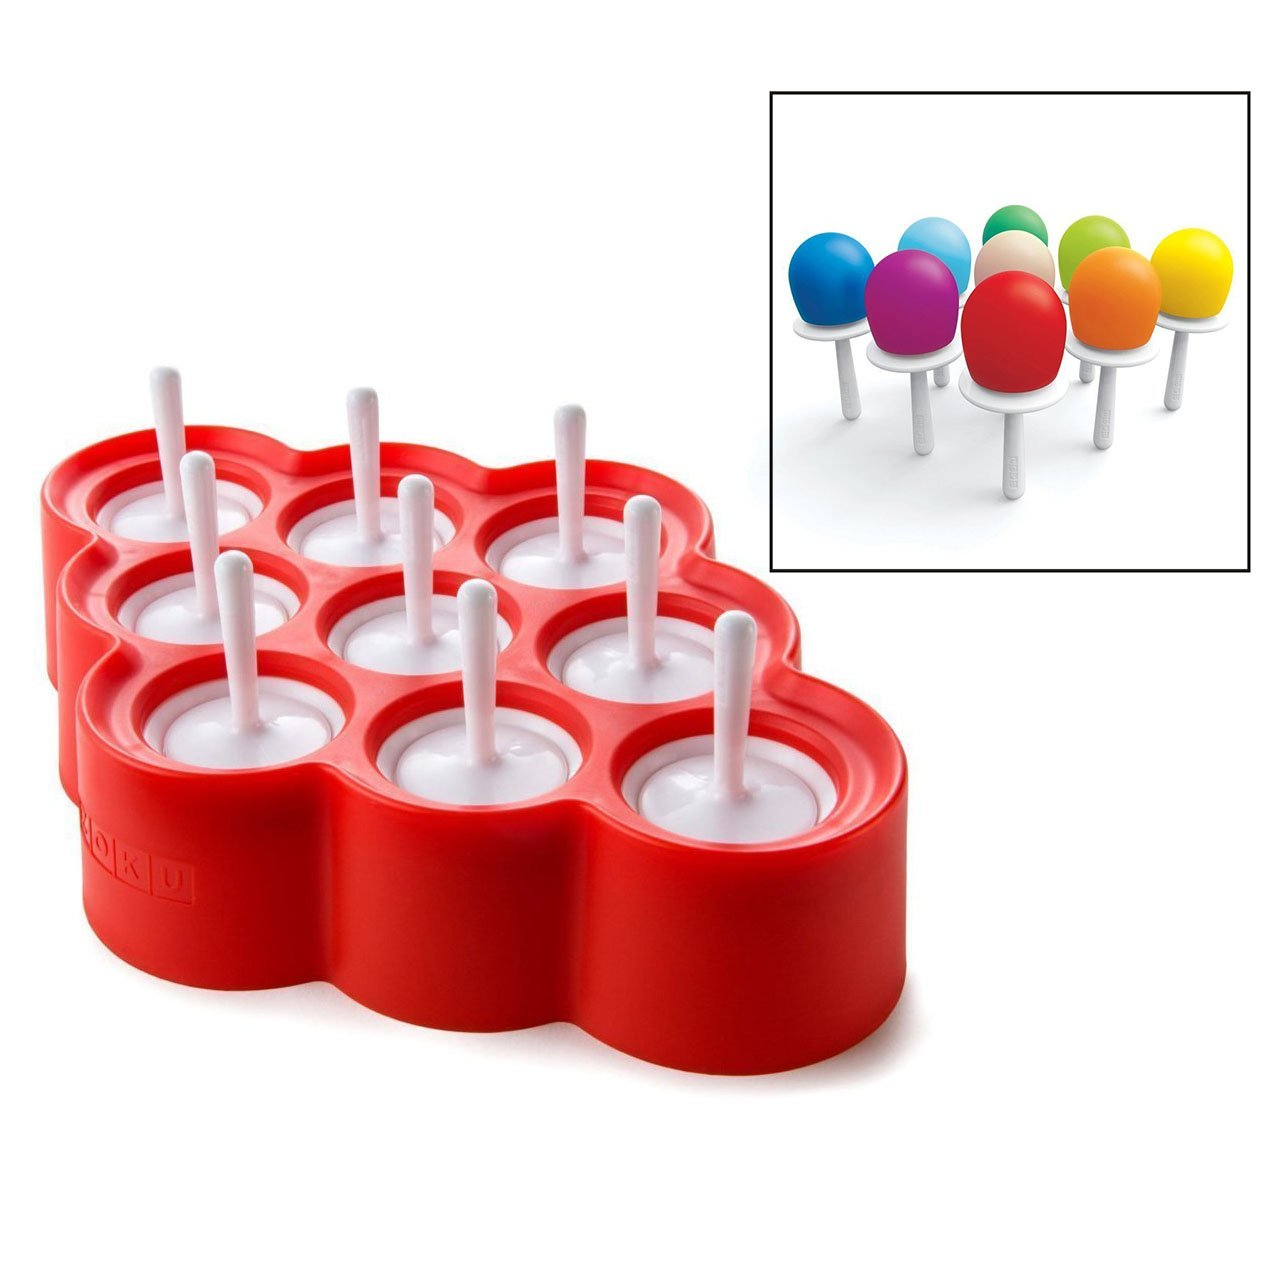 Itian 9 x Mini Silicone Ice Cream Molds Kids Kitchen Ice Popsicle Moulds Kitchen Tool Set (Red)